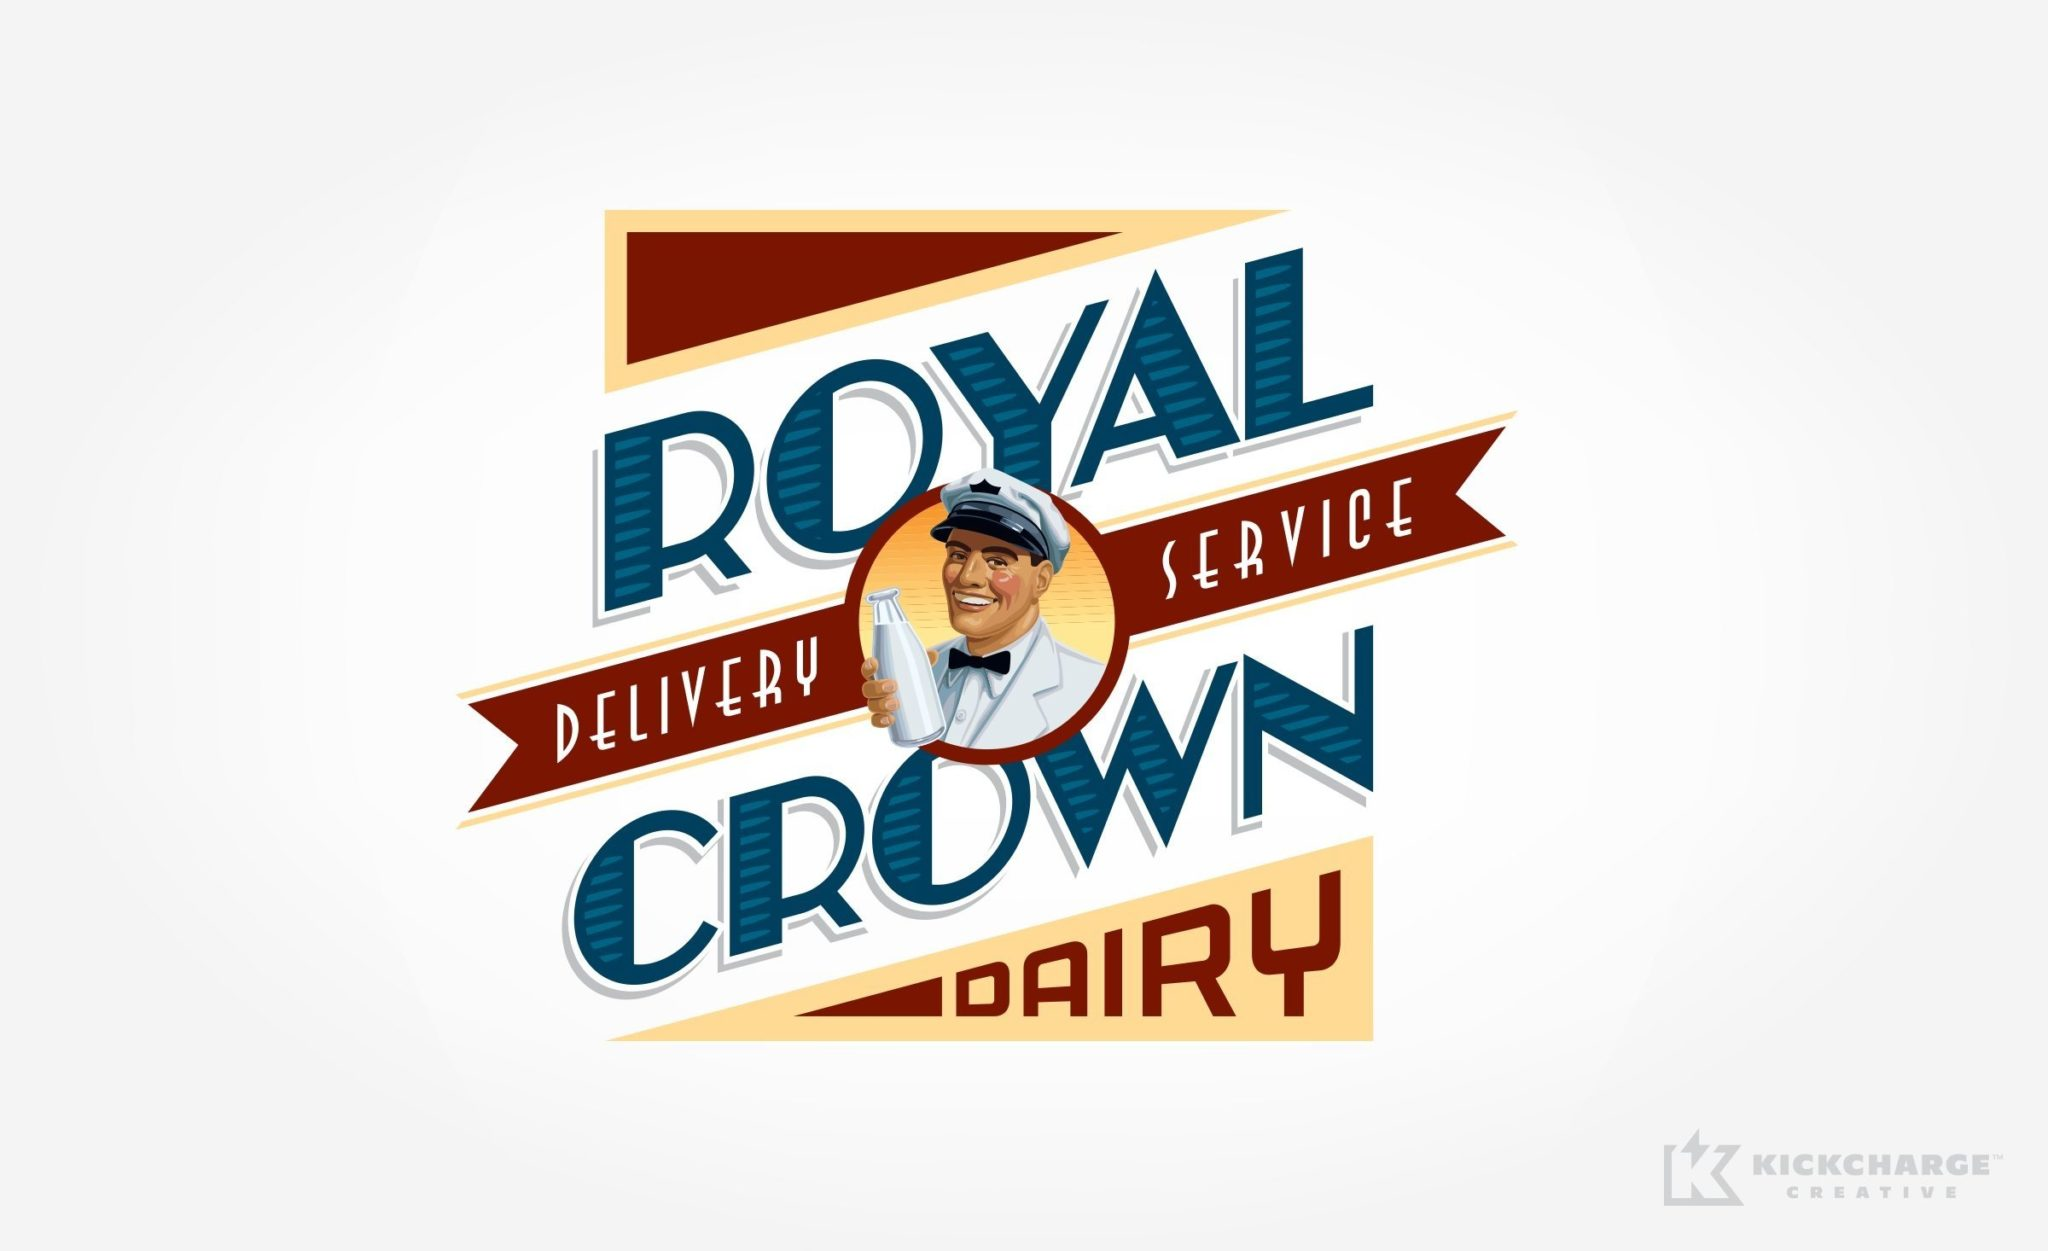 Royal Crown Dairy